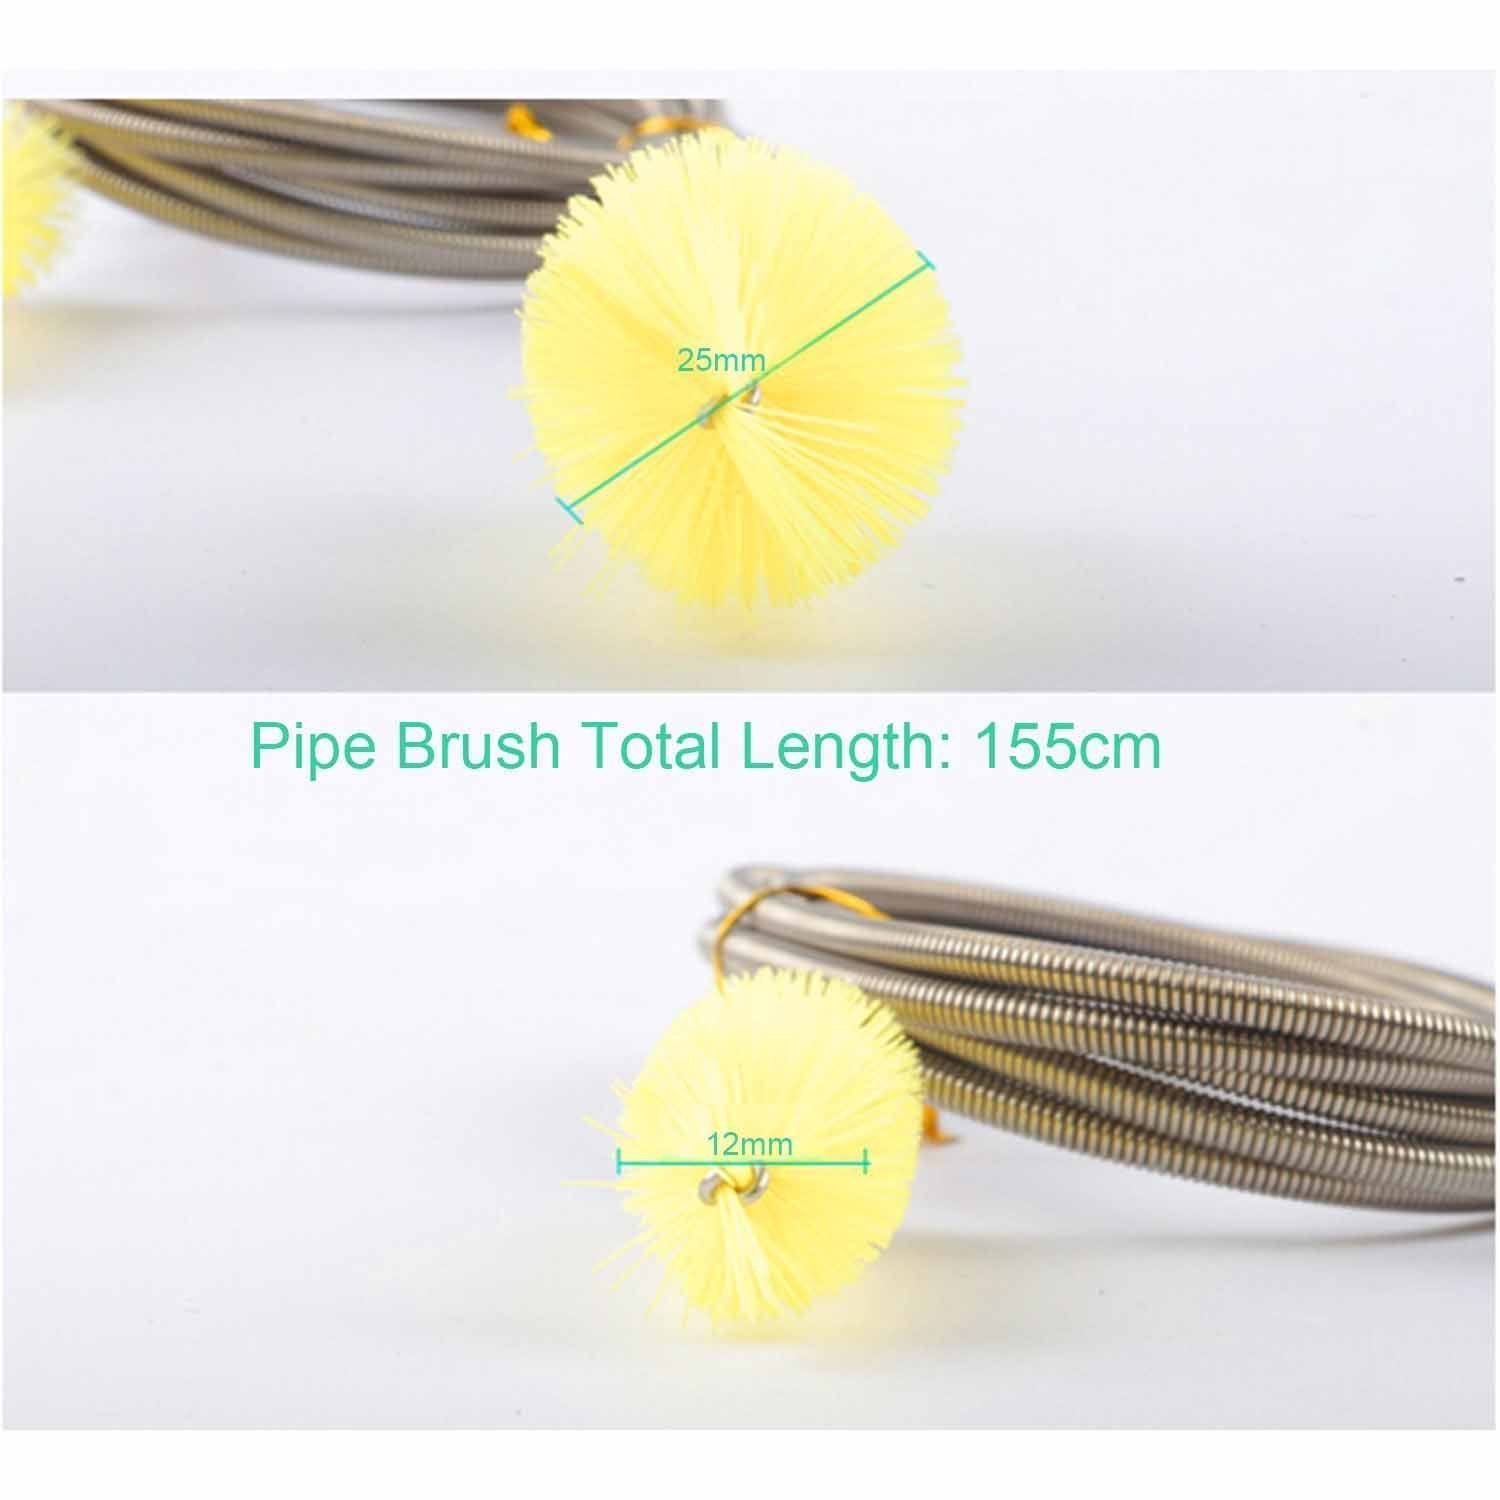 Double Ended Water Filter Pump Pipe Cleaning Brush Aquarium Fish Tank Air Tube Hose Cleaner